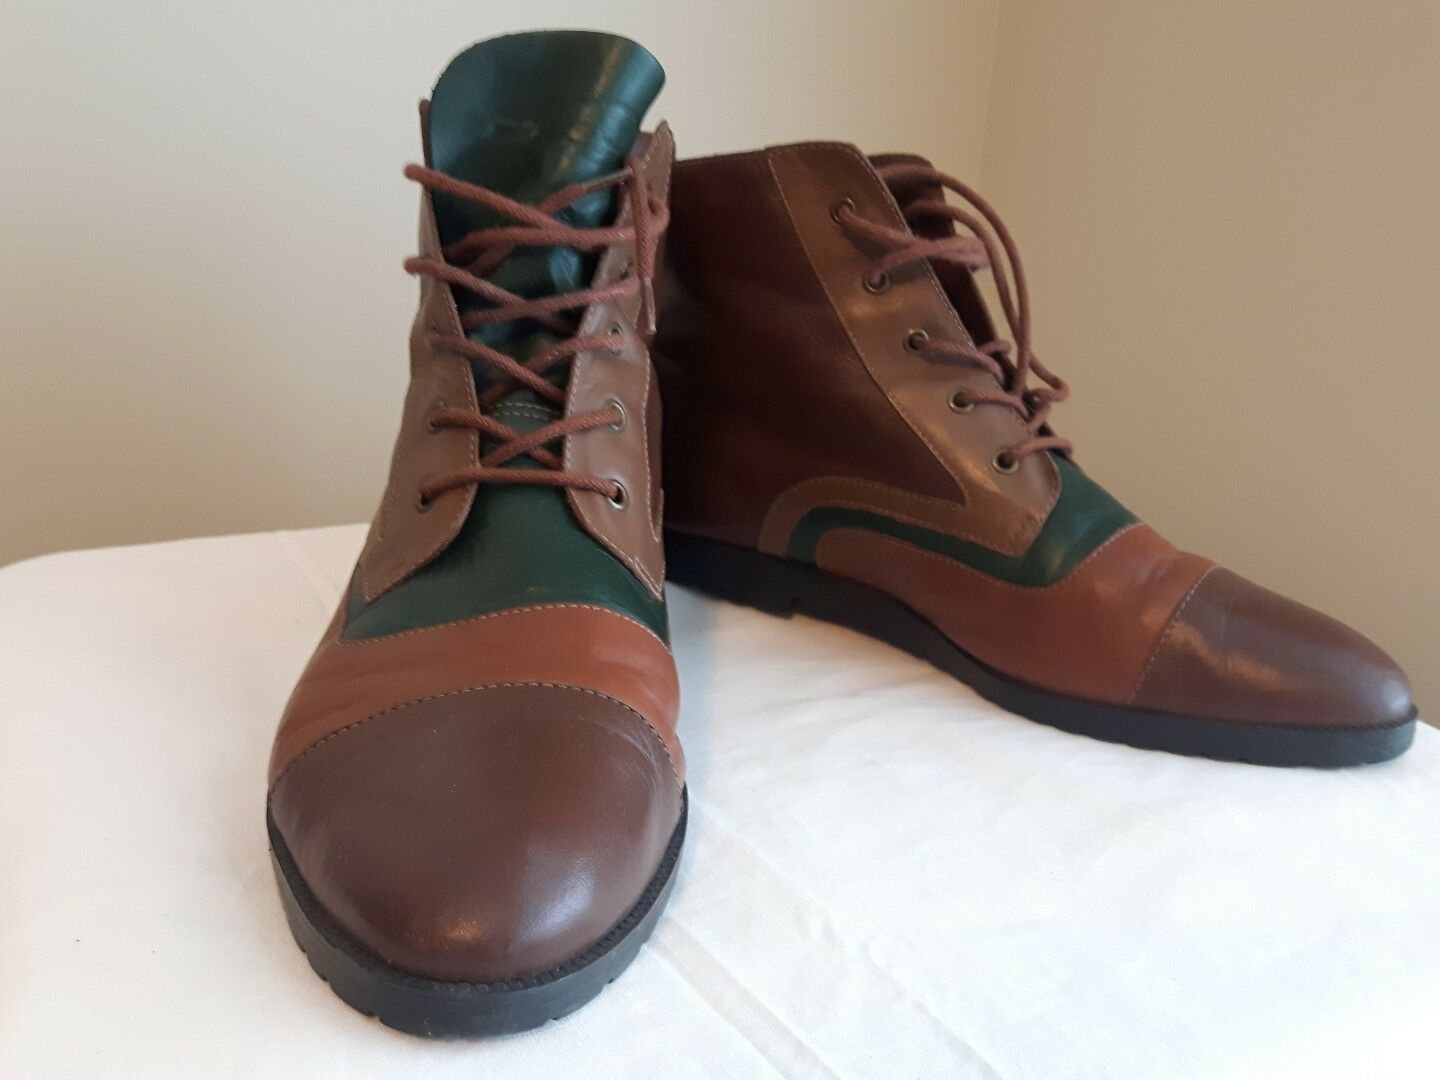 CONNIE supple leather ankle boots color block brown, green carmel 8.5 Brazil